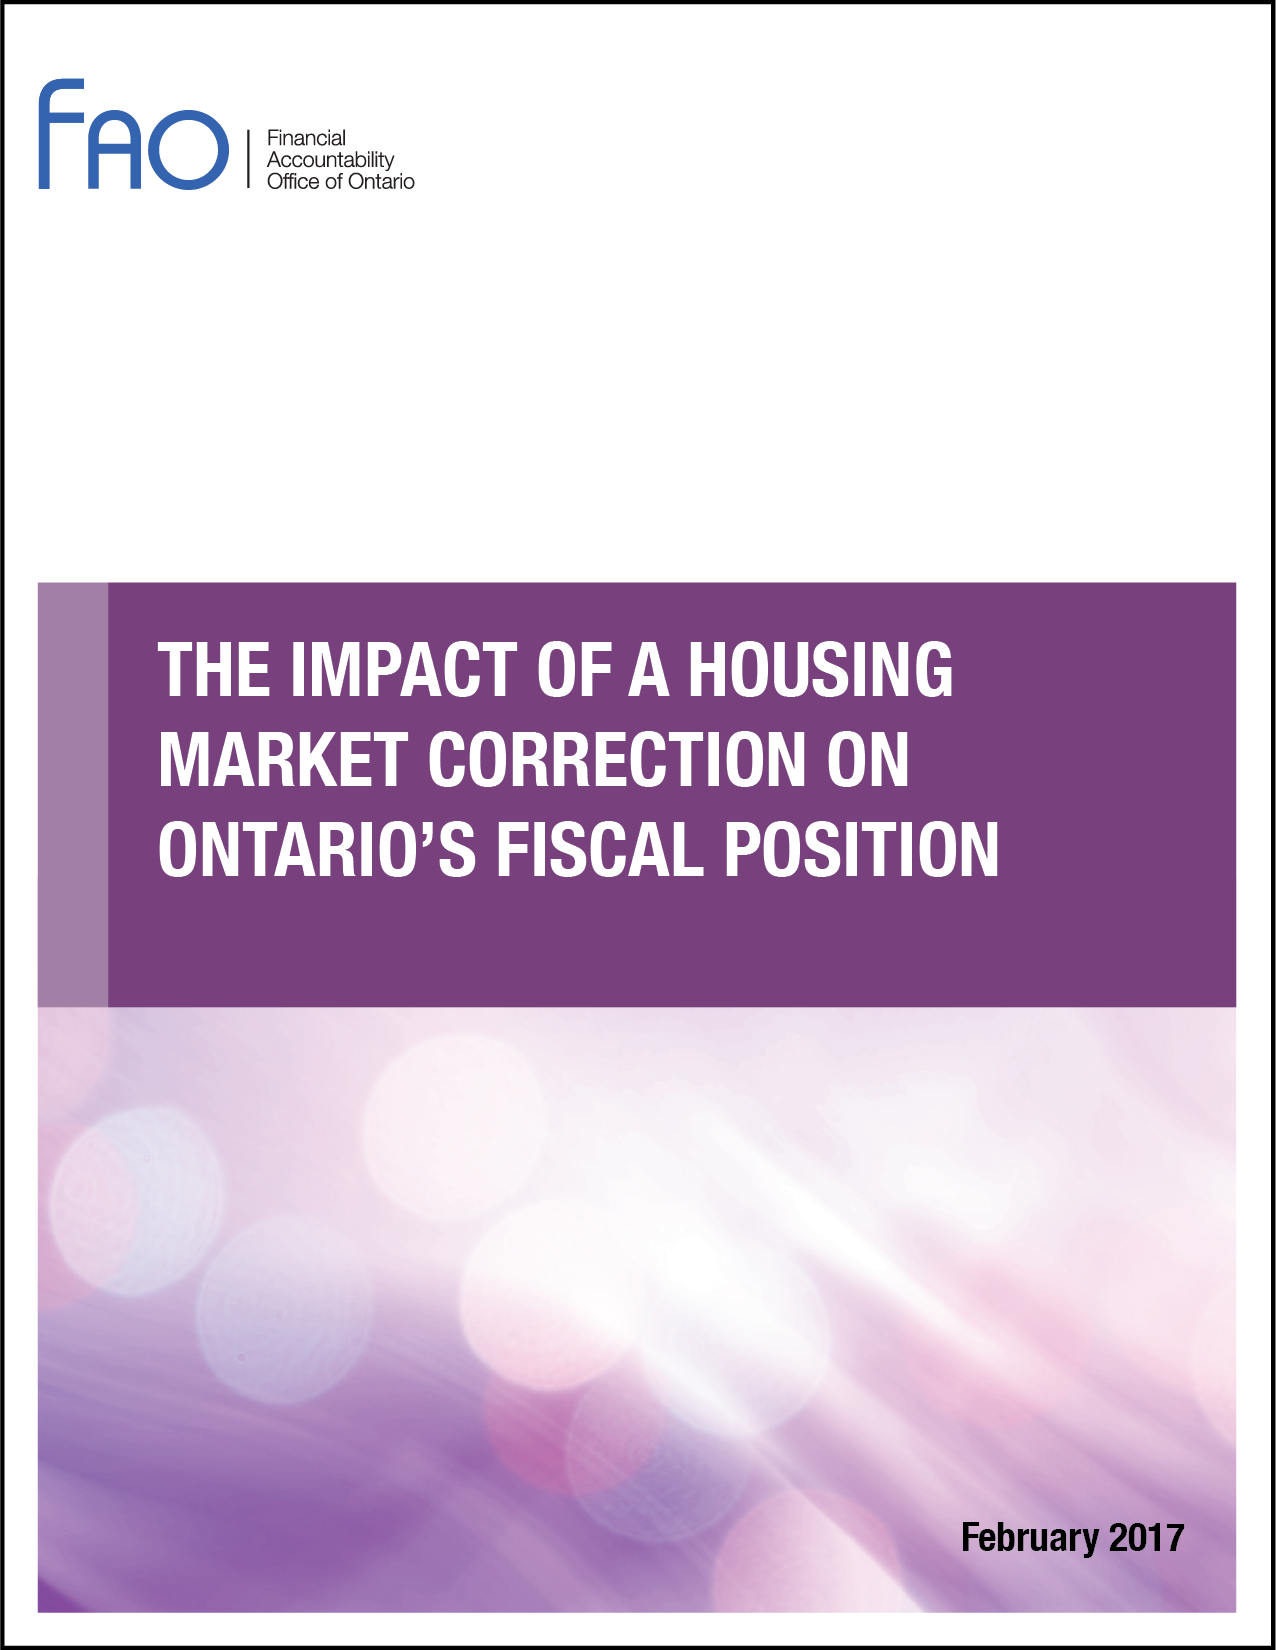 The Impact of a Housing Market Correction on Ontario's Fiscal Position